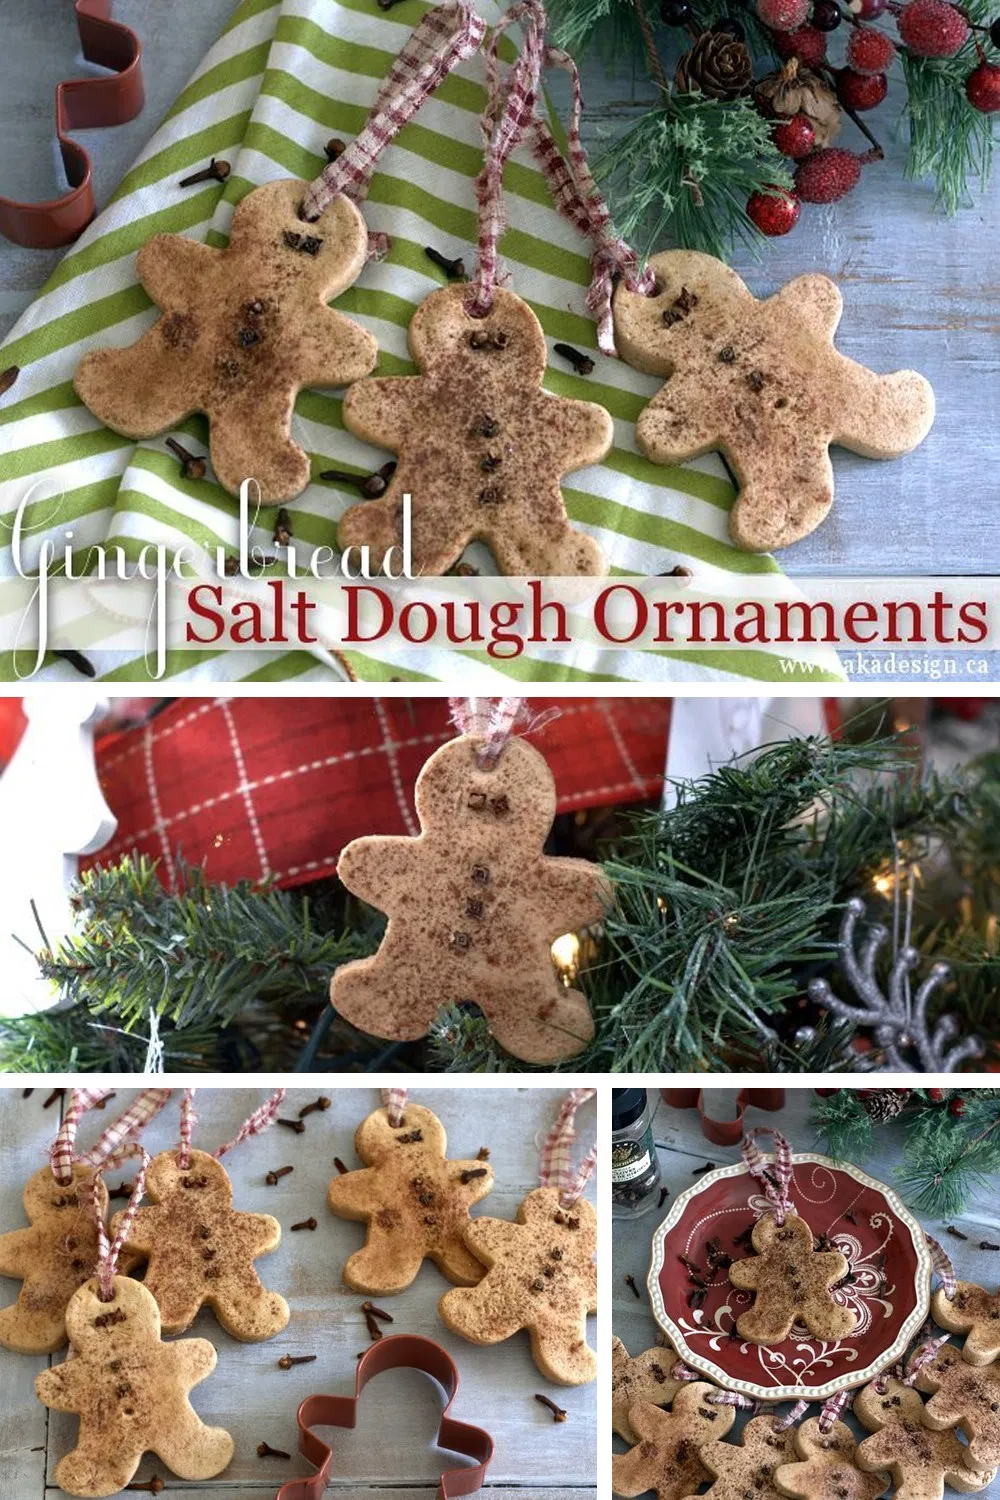 How to Make Your Own Authentic Gingerbread Salt Dough Ornaments #saltdoughornaments